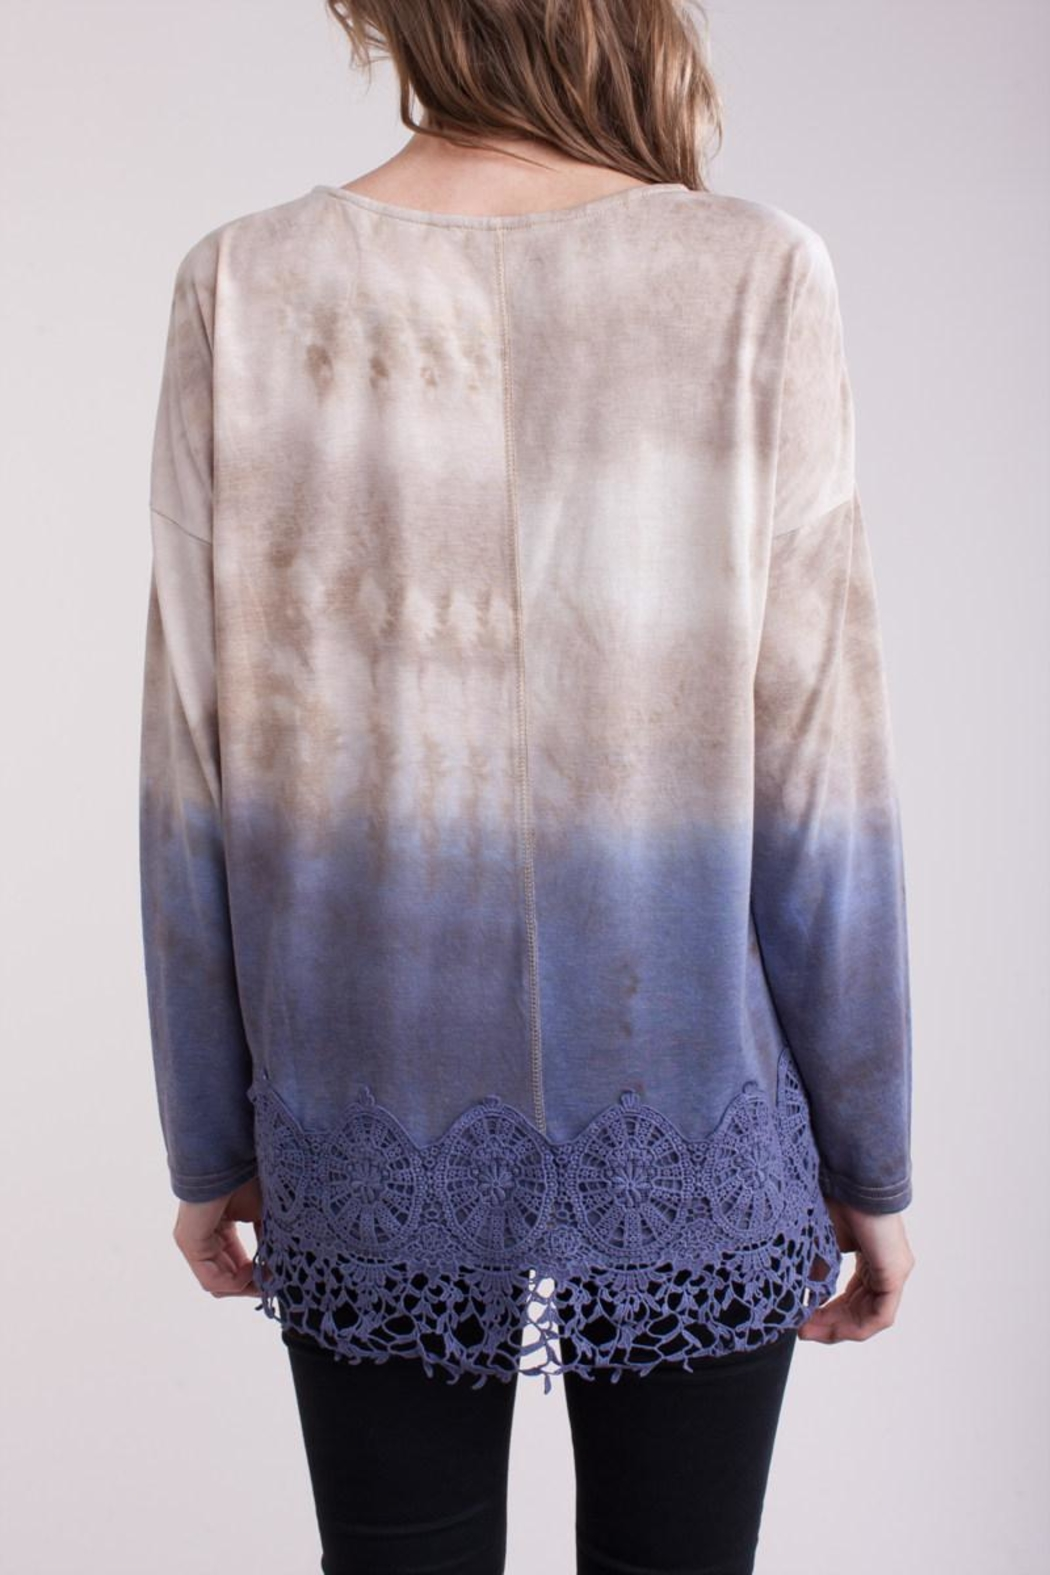 People Outfitter Geneva Knit Top - Side Cropped Image